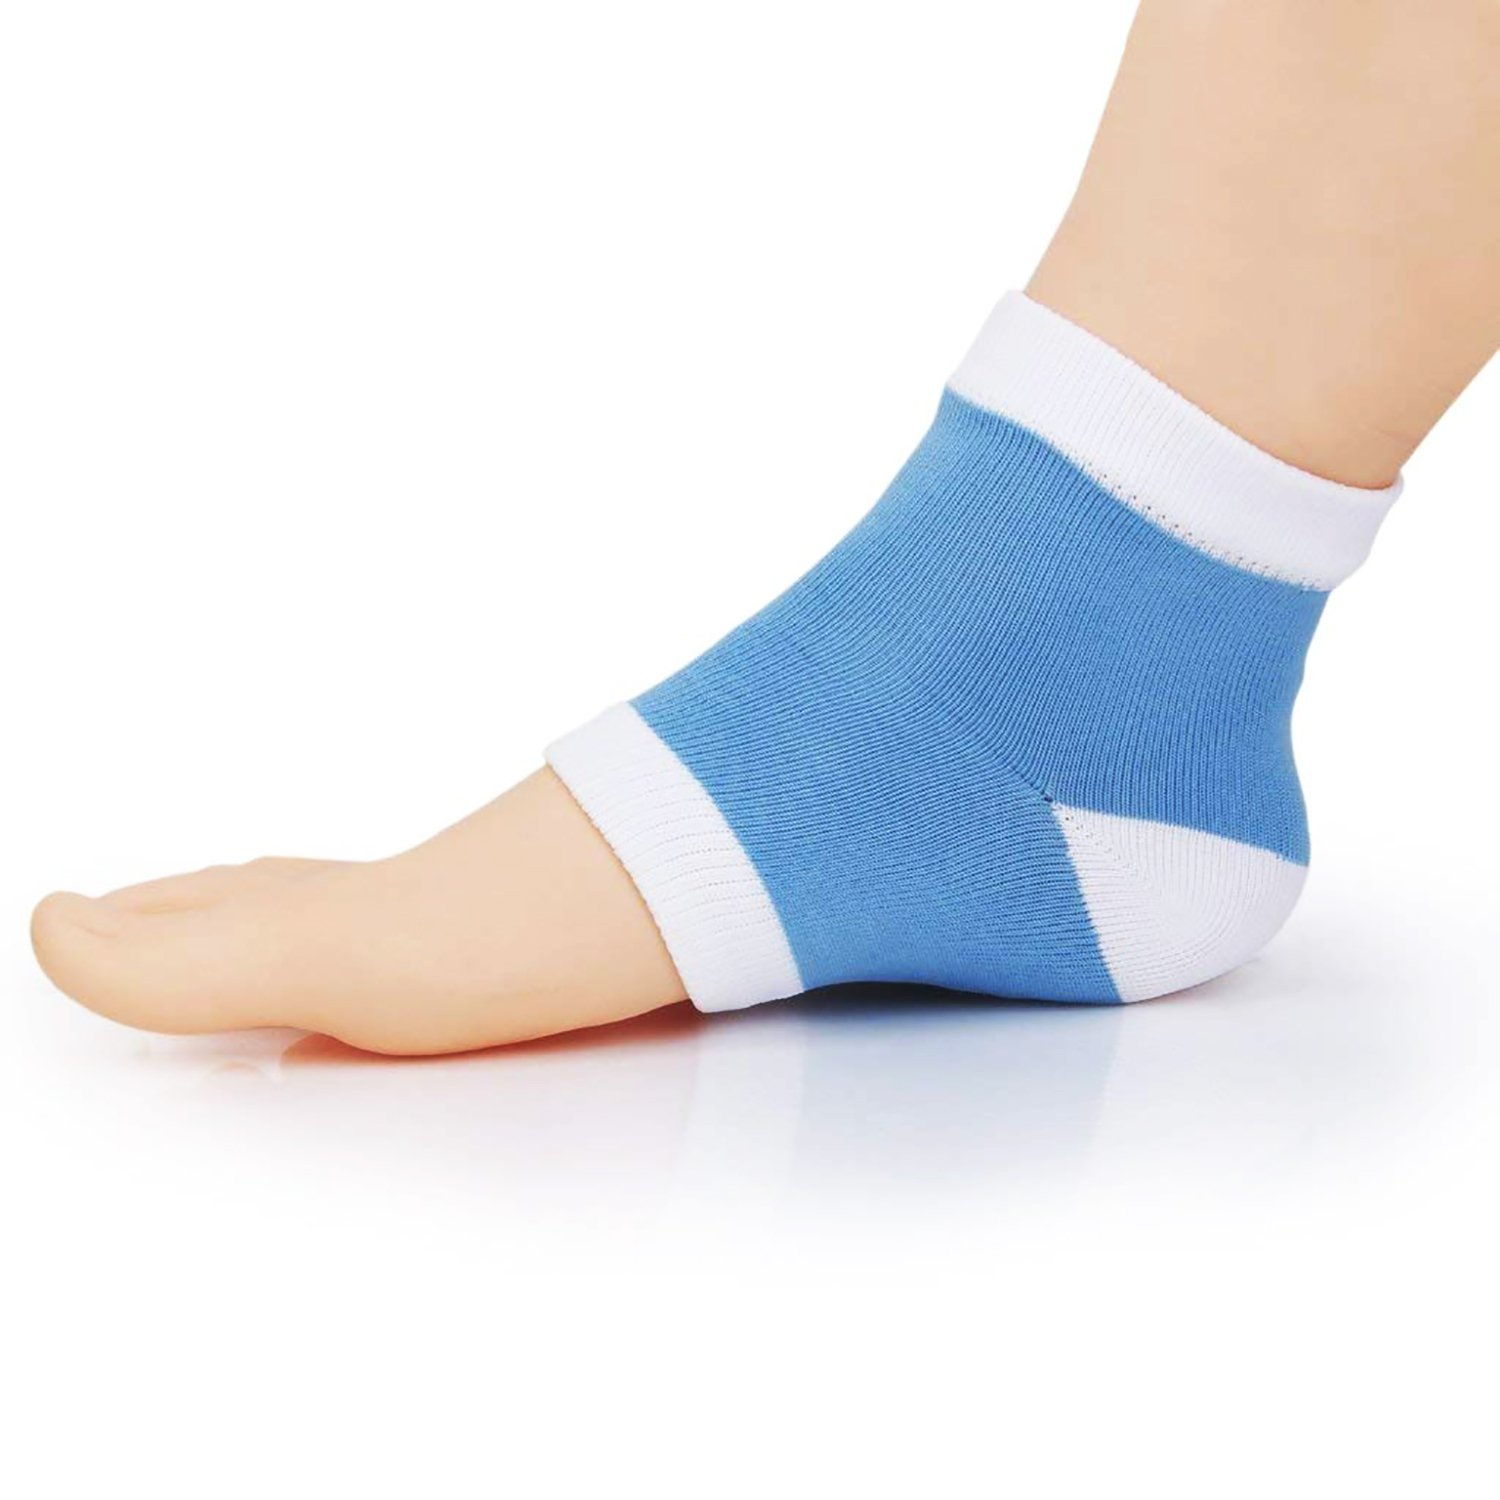 Cracked Heel Treatment - Heel Socks - Cracked Heels - Gel Socks - Moisturizing Socks - Callus Feet - 2 Pairs - Ballotte